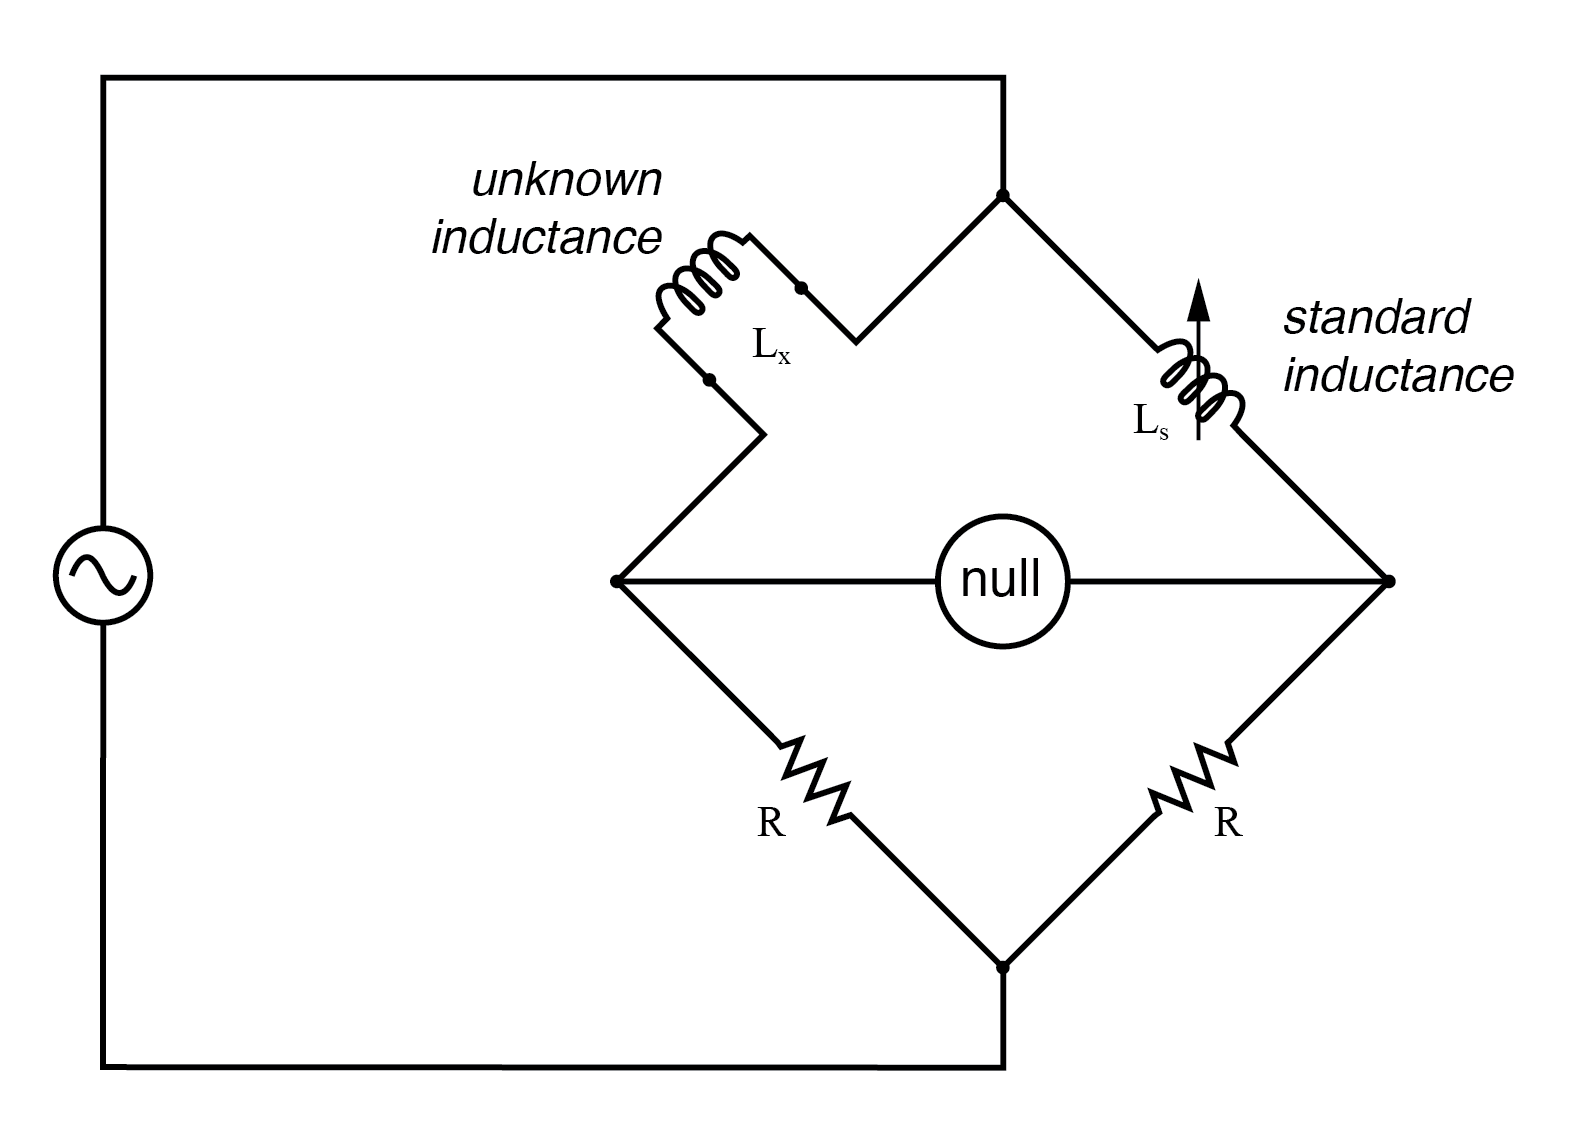 hight resolution of symmetrical bridge measures unknown inductor by comparison to a standard inductor